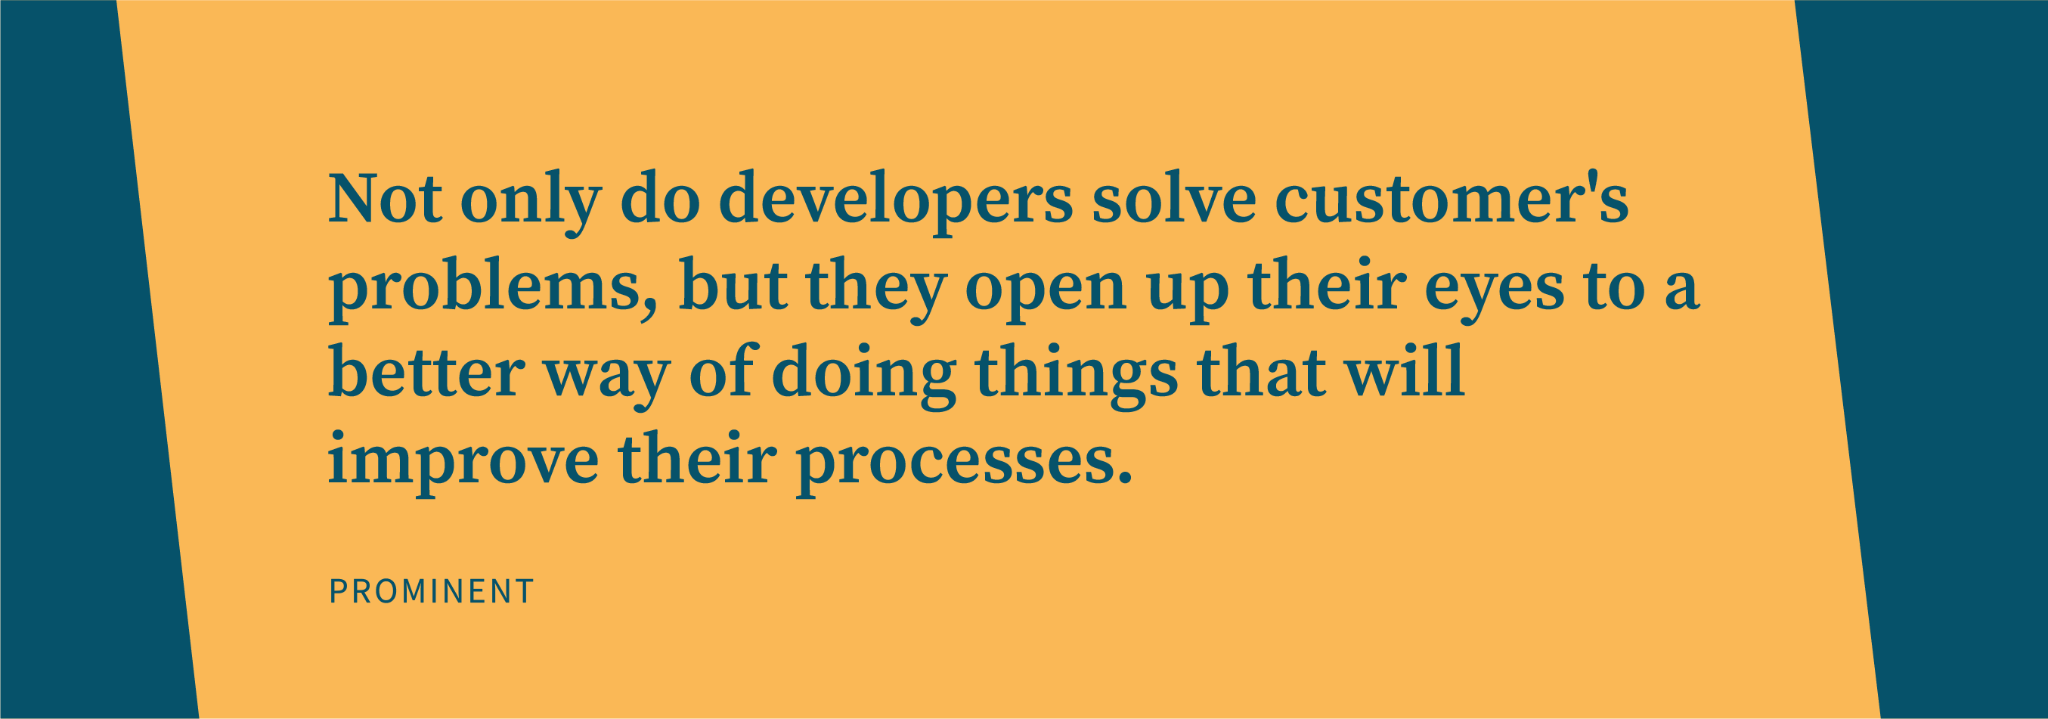 Not only do software developers solve customer's problems, but they open up their eyes to a better way of doing things that will improve their processes.